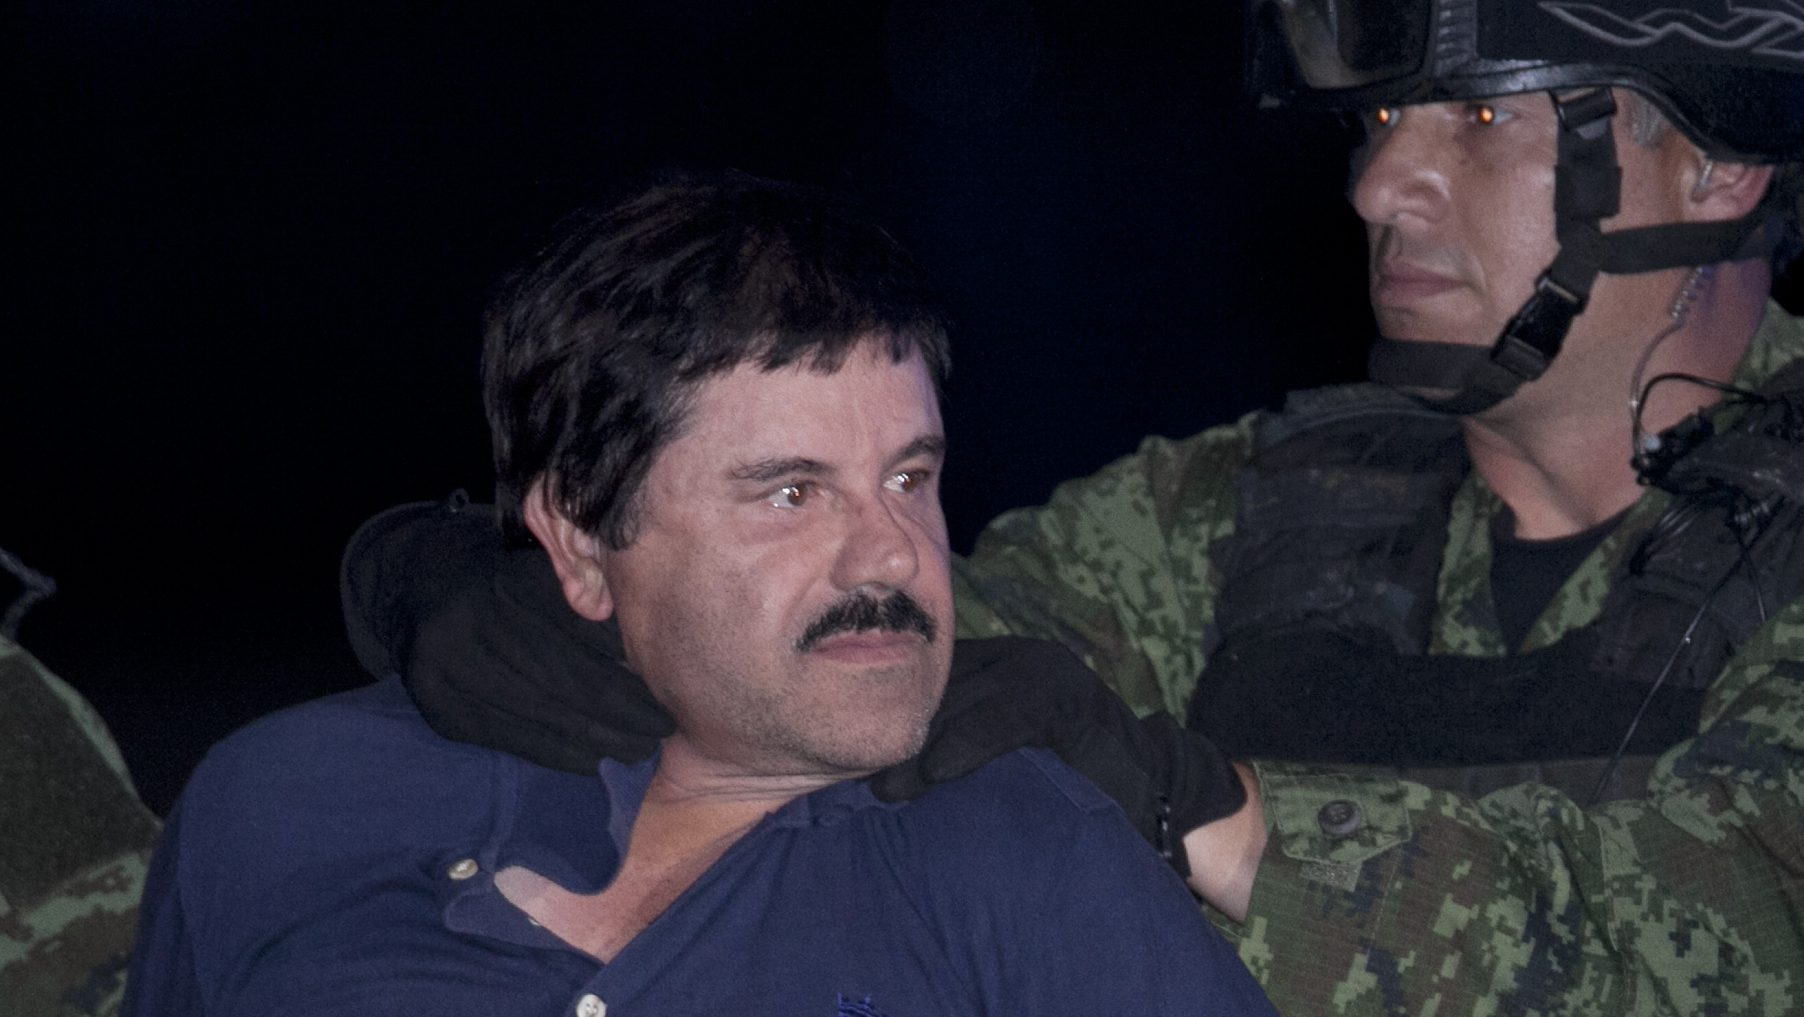 """In this Jan. 8, 2016 file photo, Joaquin """"El Chapo"""" Guzman is made to face the press as he is escorted to a helicopter in handcuffs by Mexican soldiers and marines at a federal hangar in Mexico City, Mexico. Mexico's Foreign Relations department has ruled that the extradition of Guzman to the United States can go forward. The department said Friday, May 20, 2016 that the U.S. had guaranteed that Guzman would not face the death penalty, which is not applied in Mexico. The process can be appealed."""